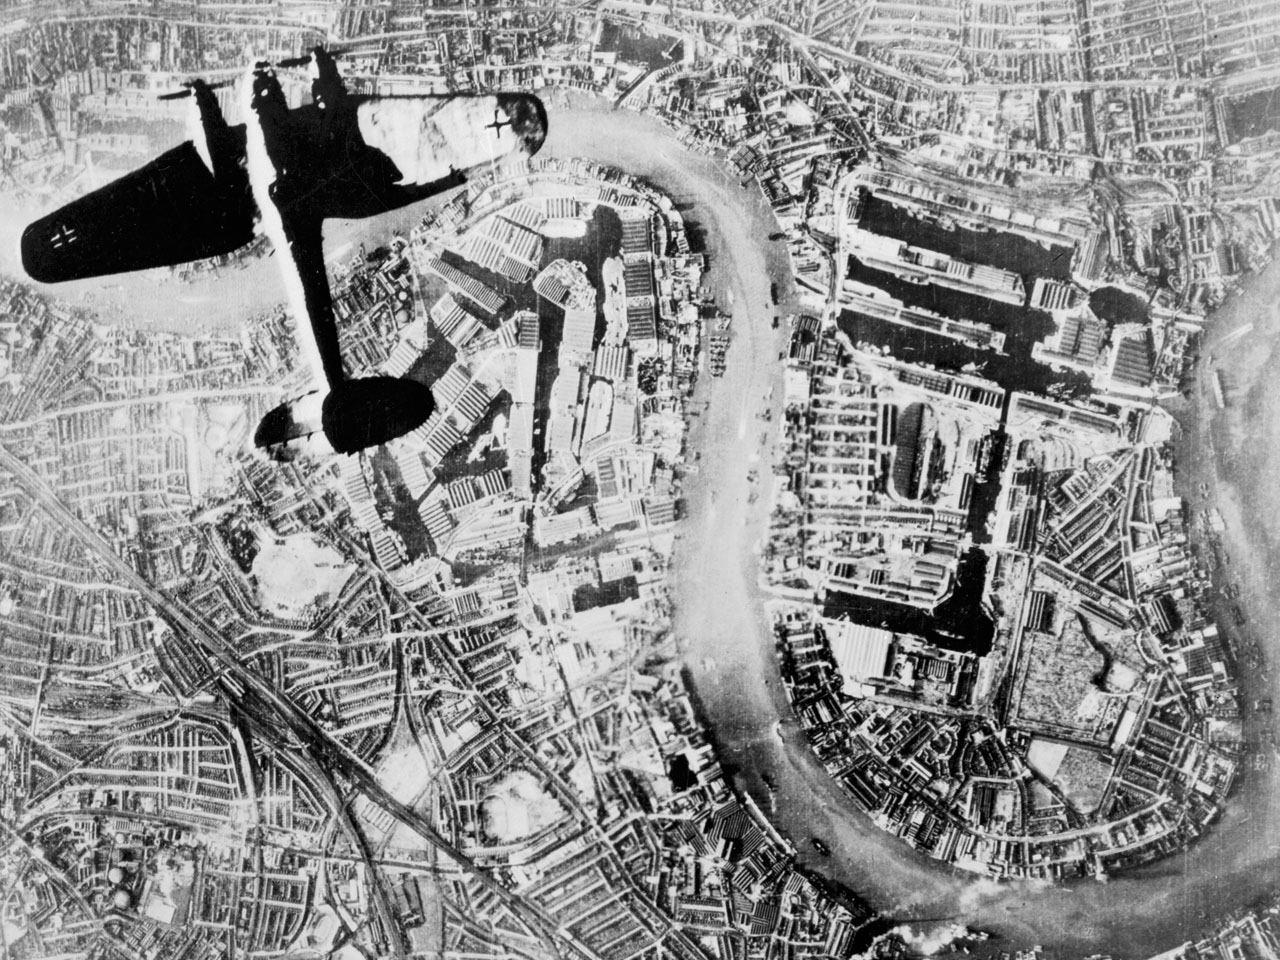 Heinkel_over_Wapping.jpg